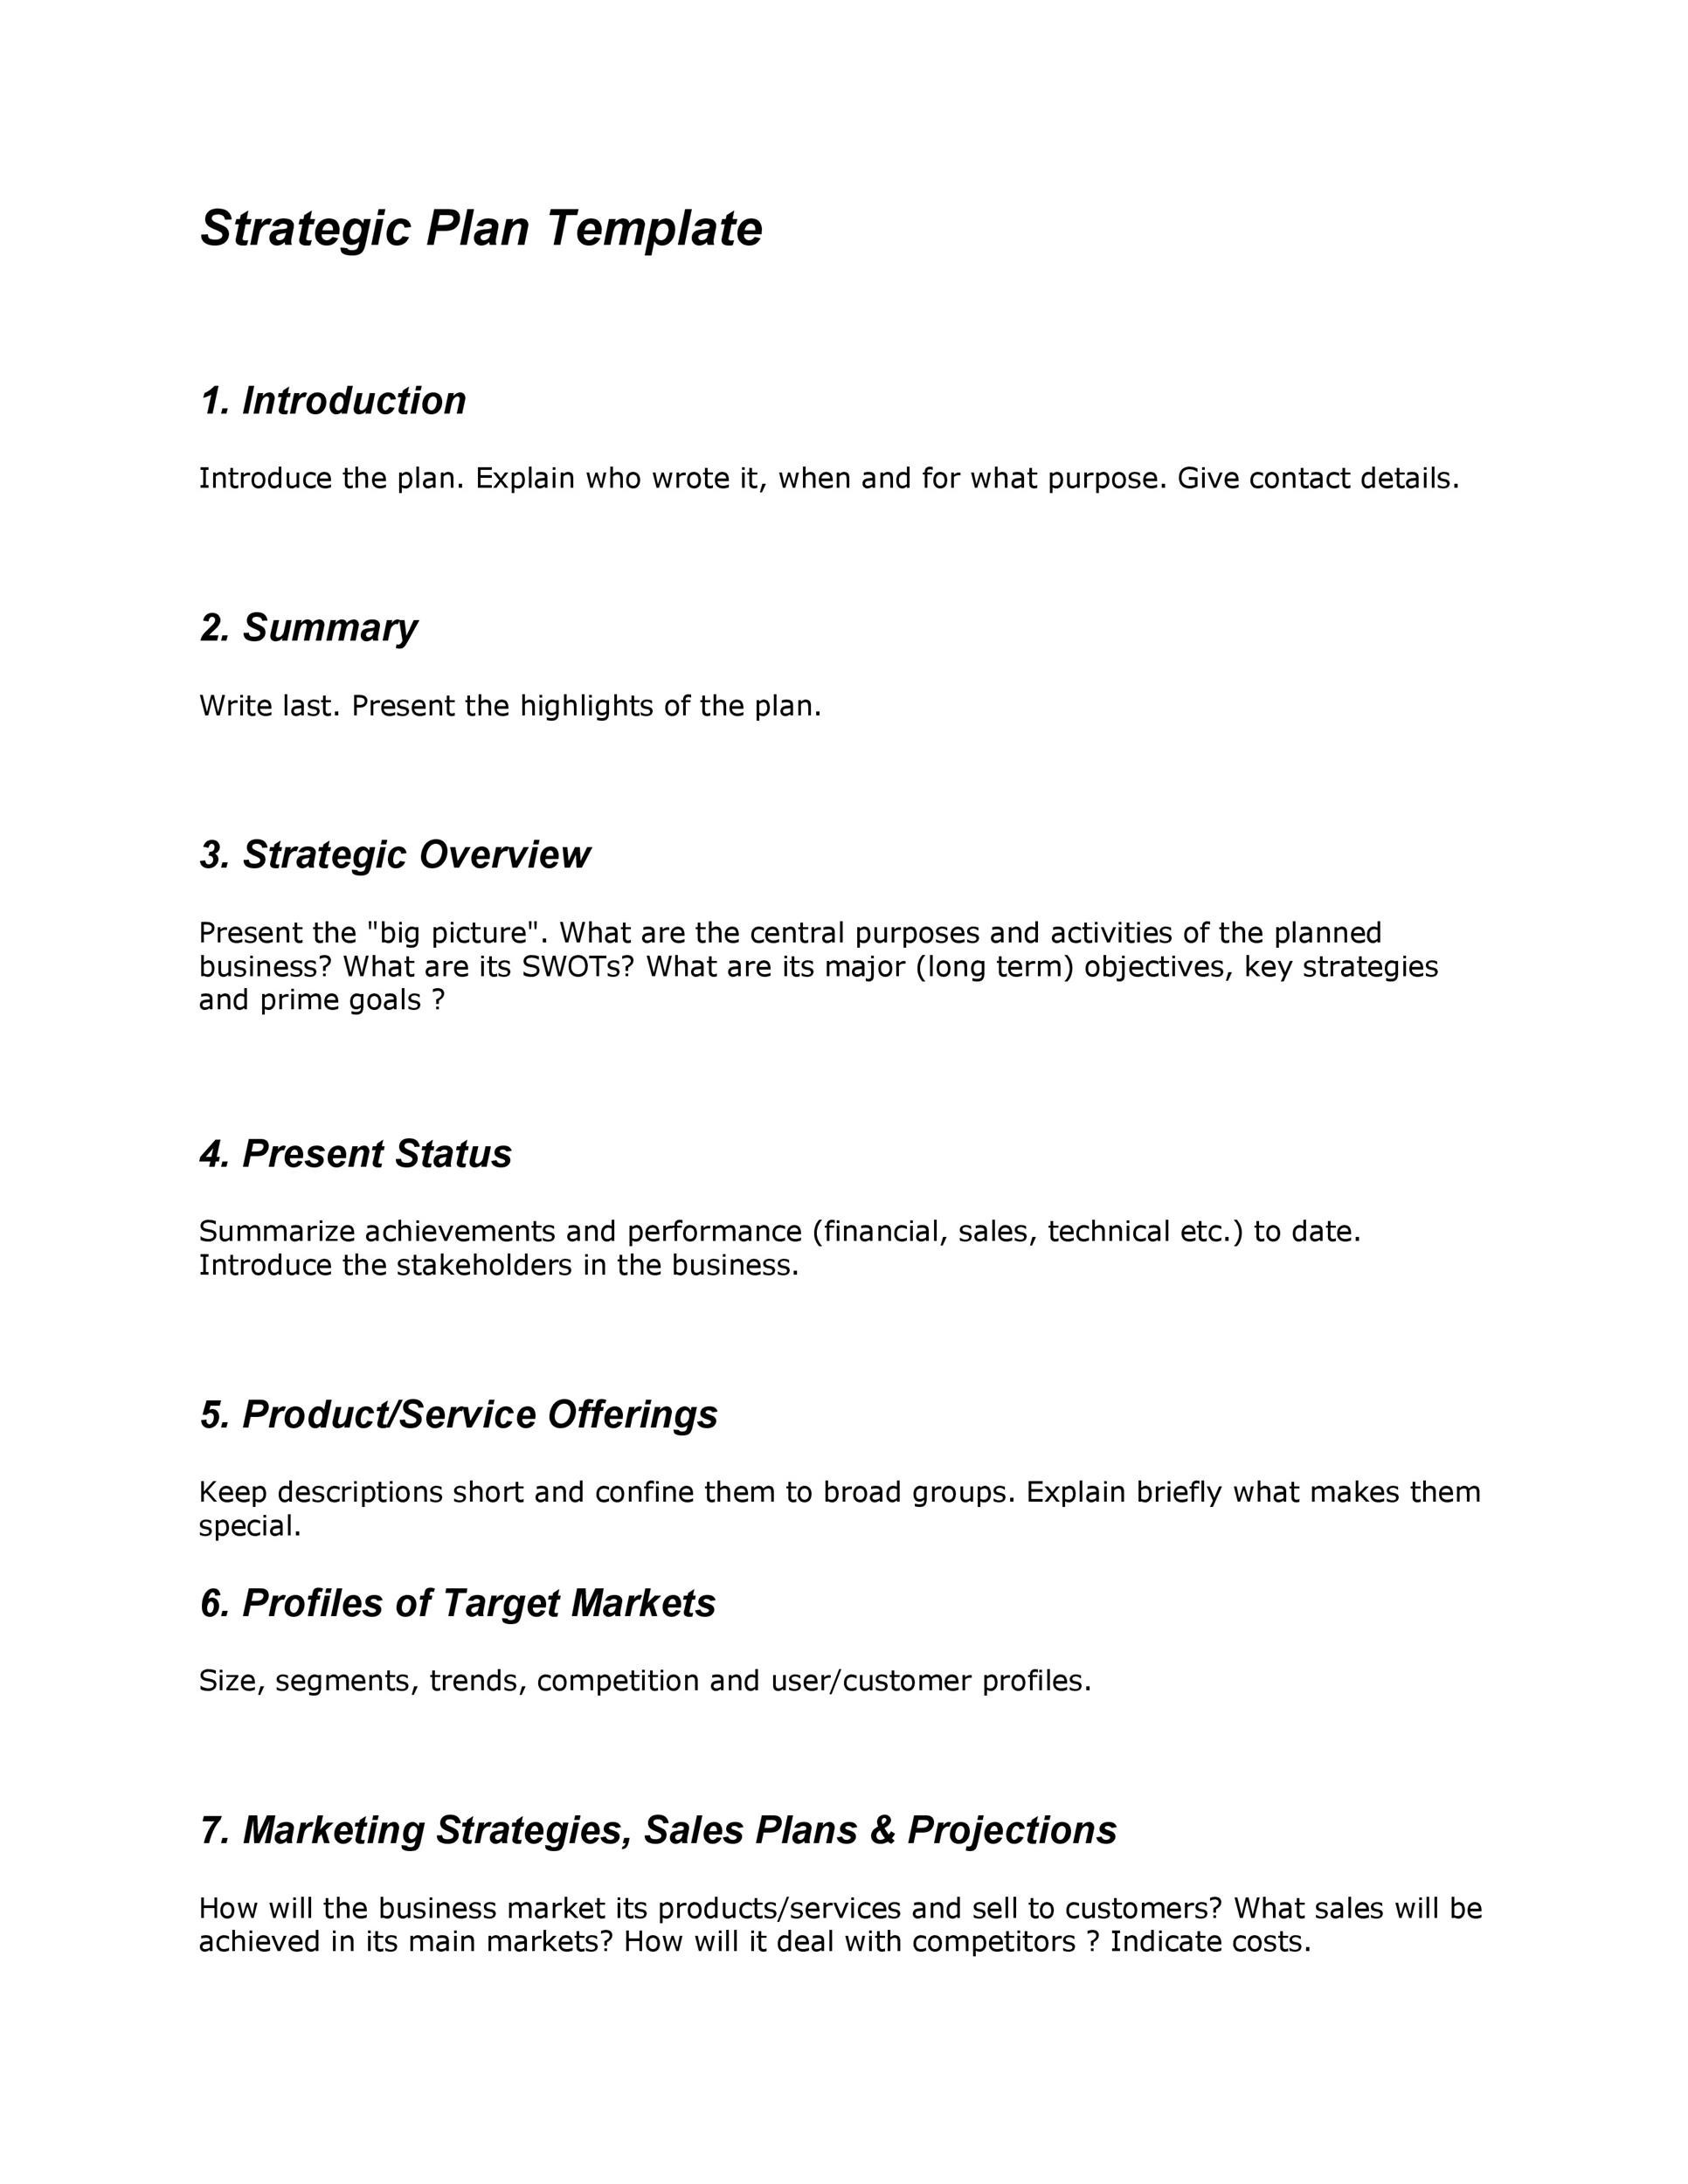 32 Great Strategic Plan Templates to Grow your Business - strategic plan template